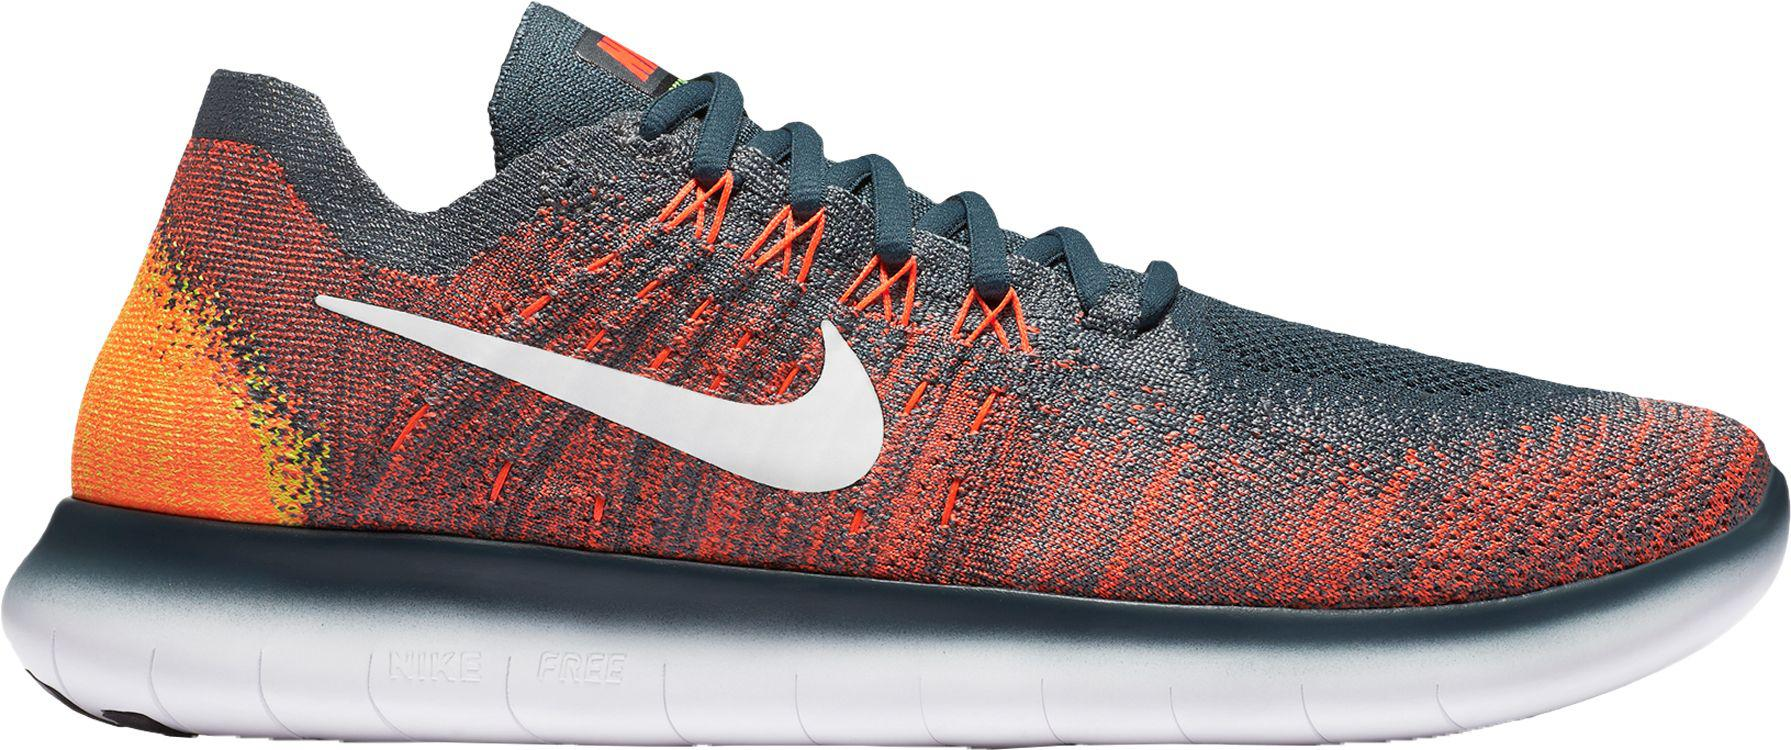 d83b52292128 ... shop nike gray free rn flyknit 2017 running shoes for men lyst 85036  d8d4a